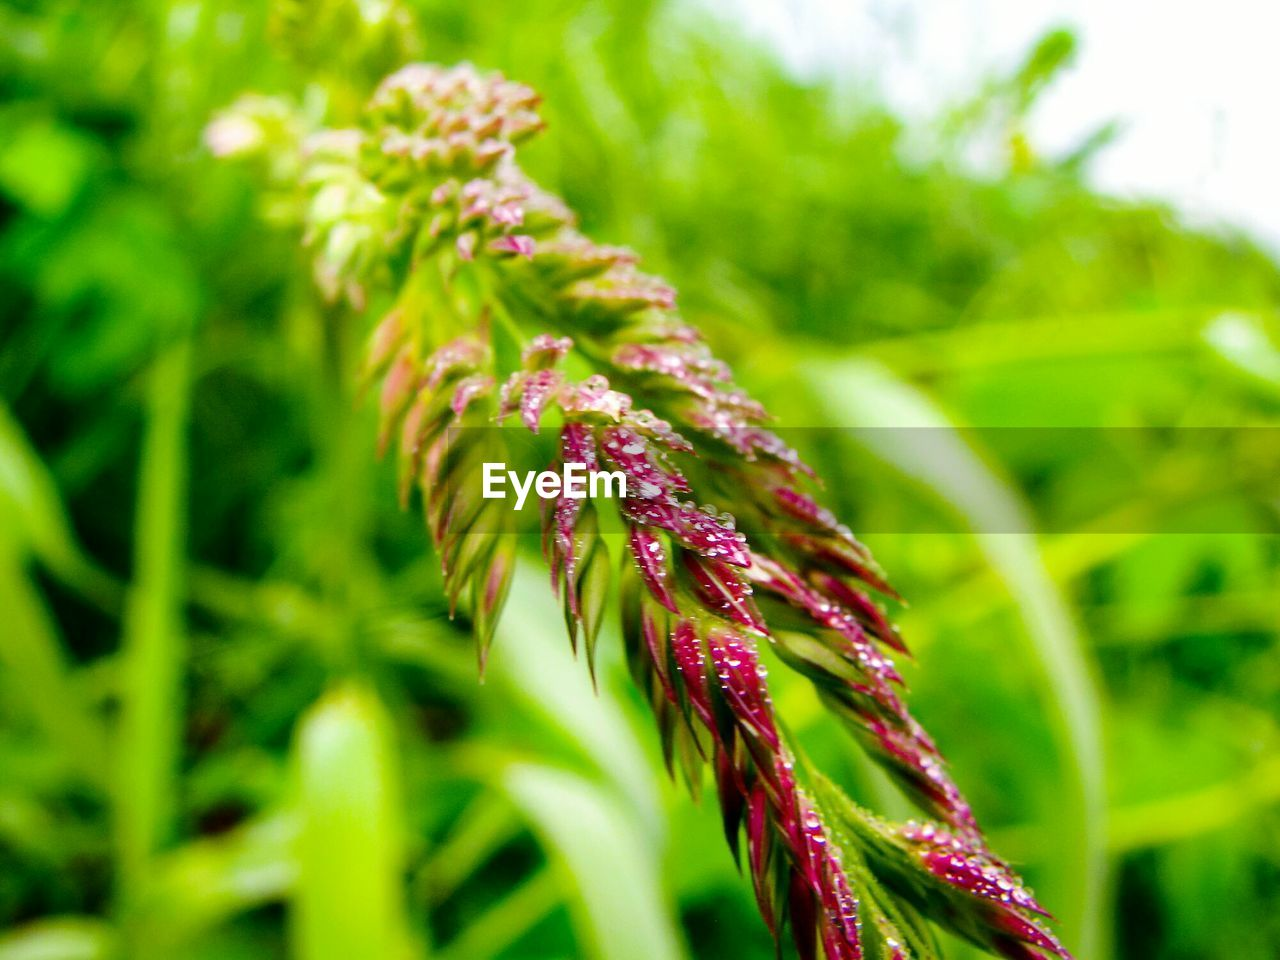 growth, green color, plant, close-up, beauty in nature, no people, freshness, nature, selective focus, focus on foreground, day, fragility, vulnerability, outdoors, flower, field, plant part, land, leaf, tranquility, purple